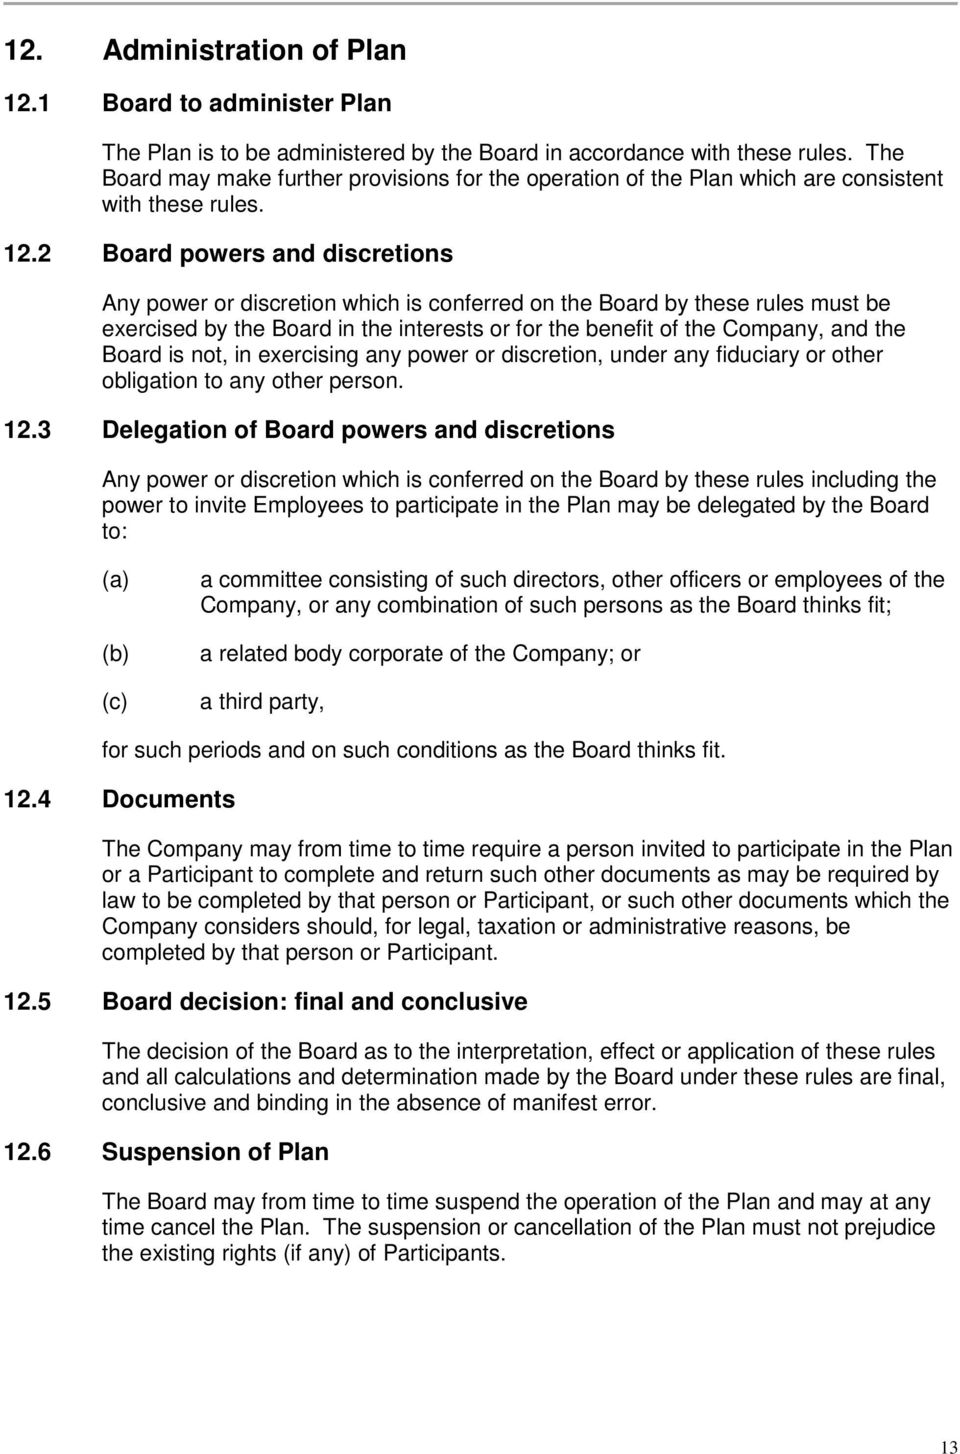 2 Board powers and discretions Any power or discretion which is conferred on the Board by these rules must be exercised by the Board in the interests or for the benefit of the Company, and the Board